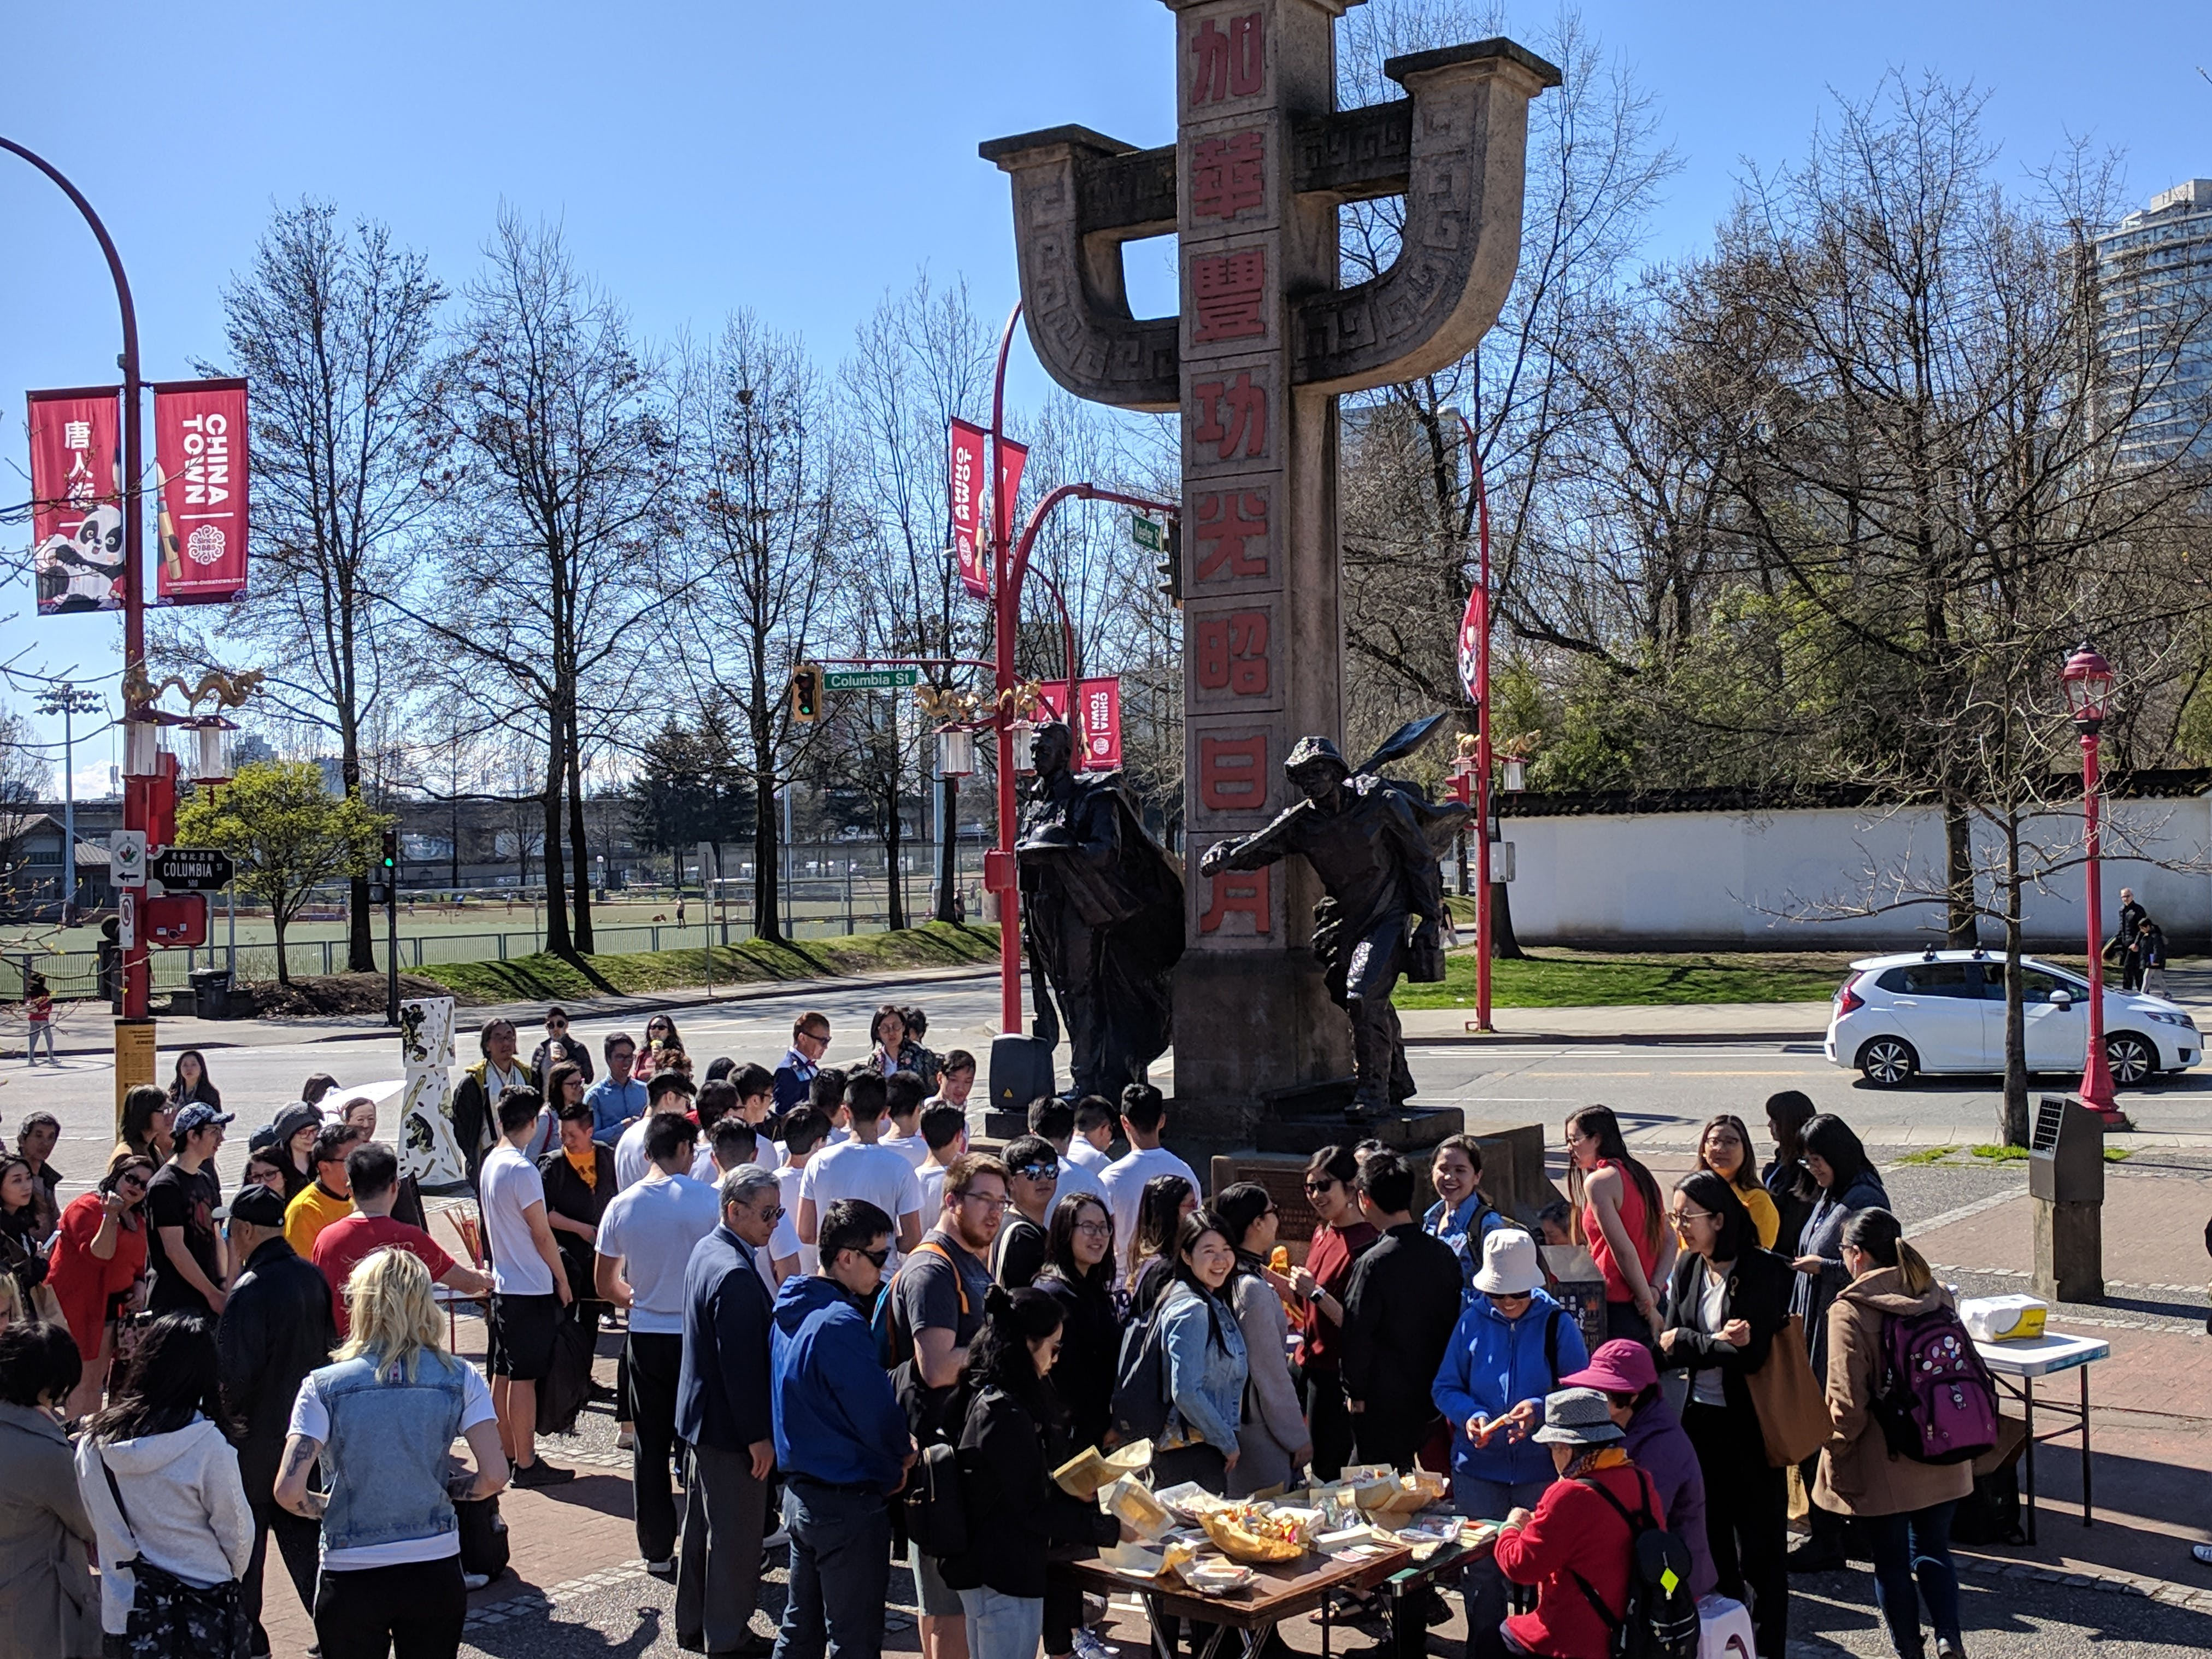 A youth group gathers on Memorial Square sharing food and socializing.